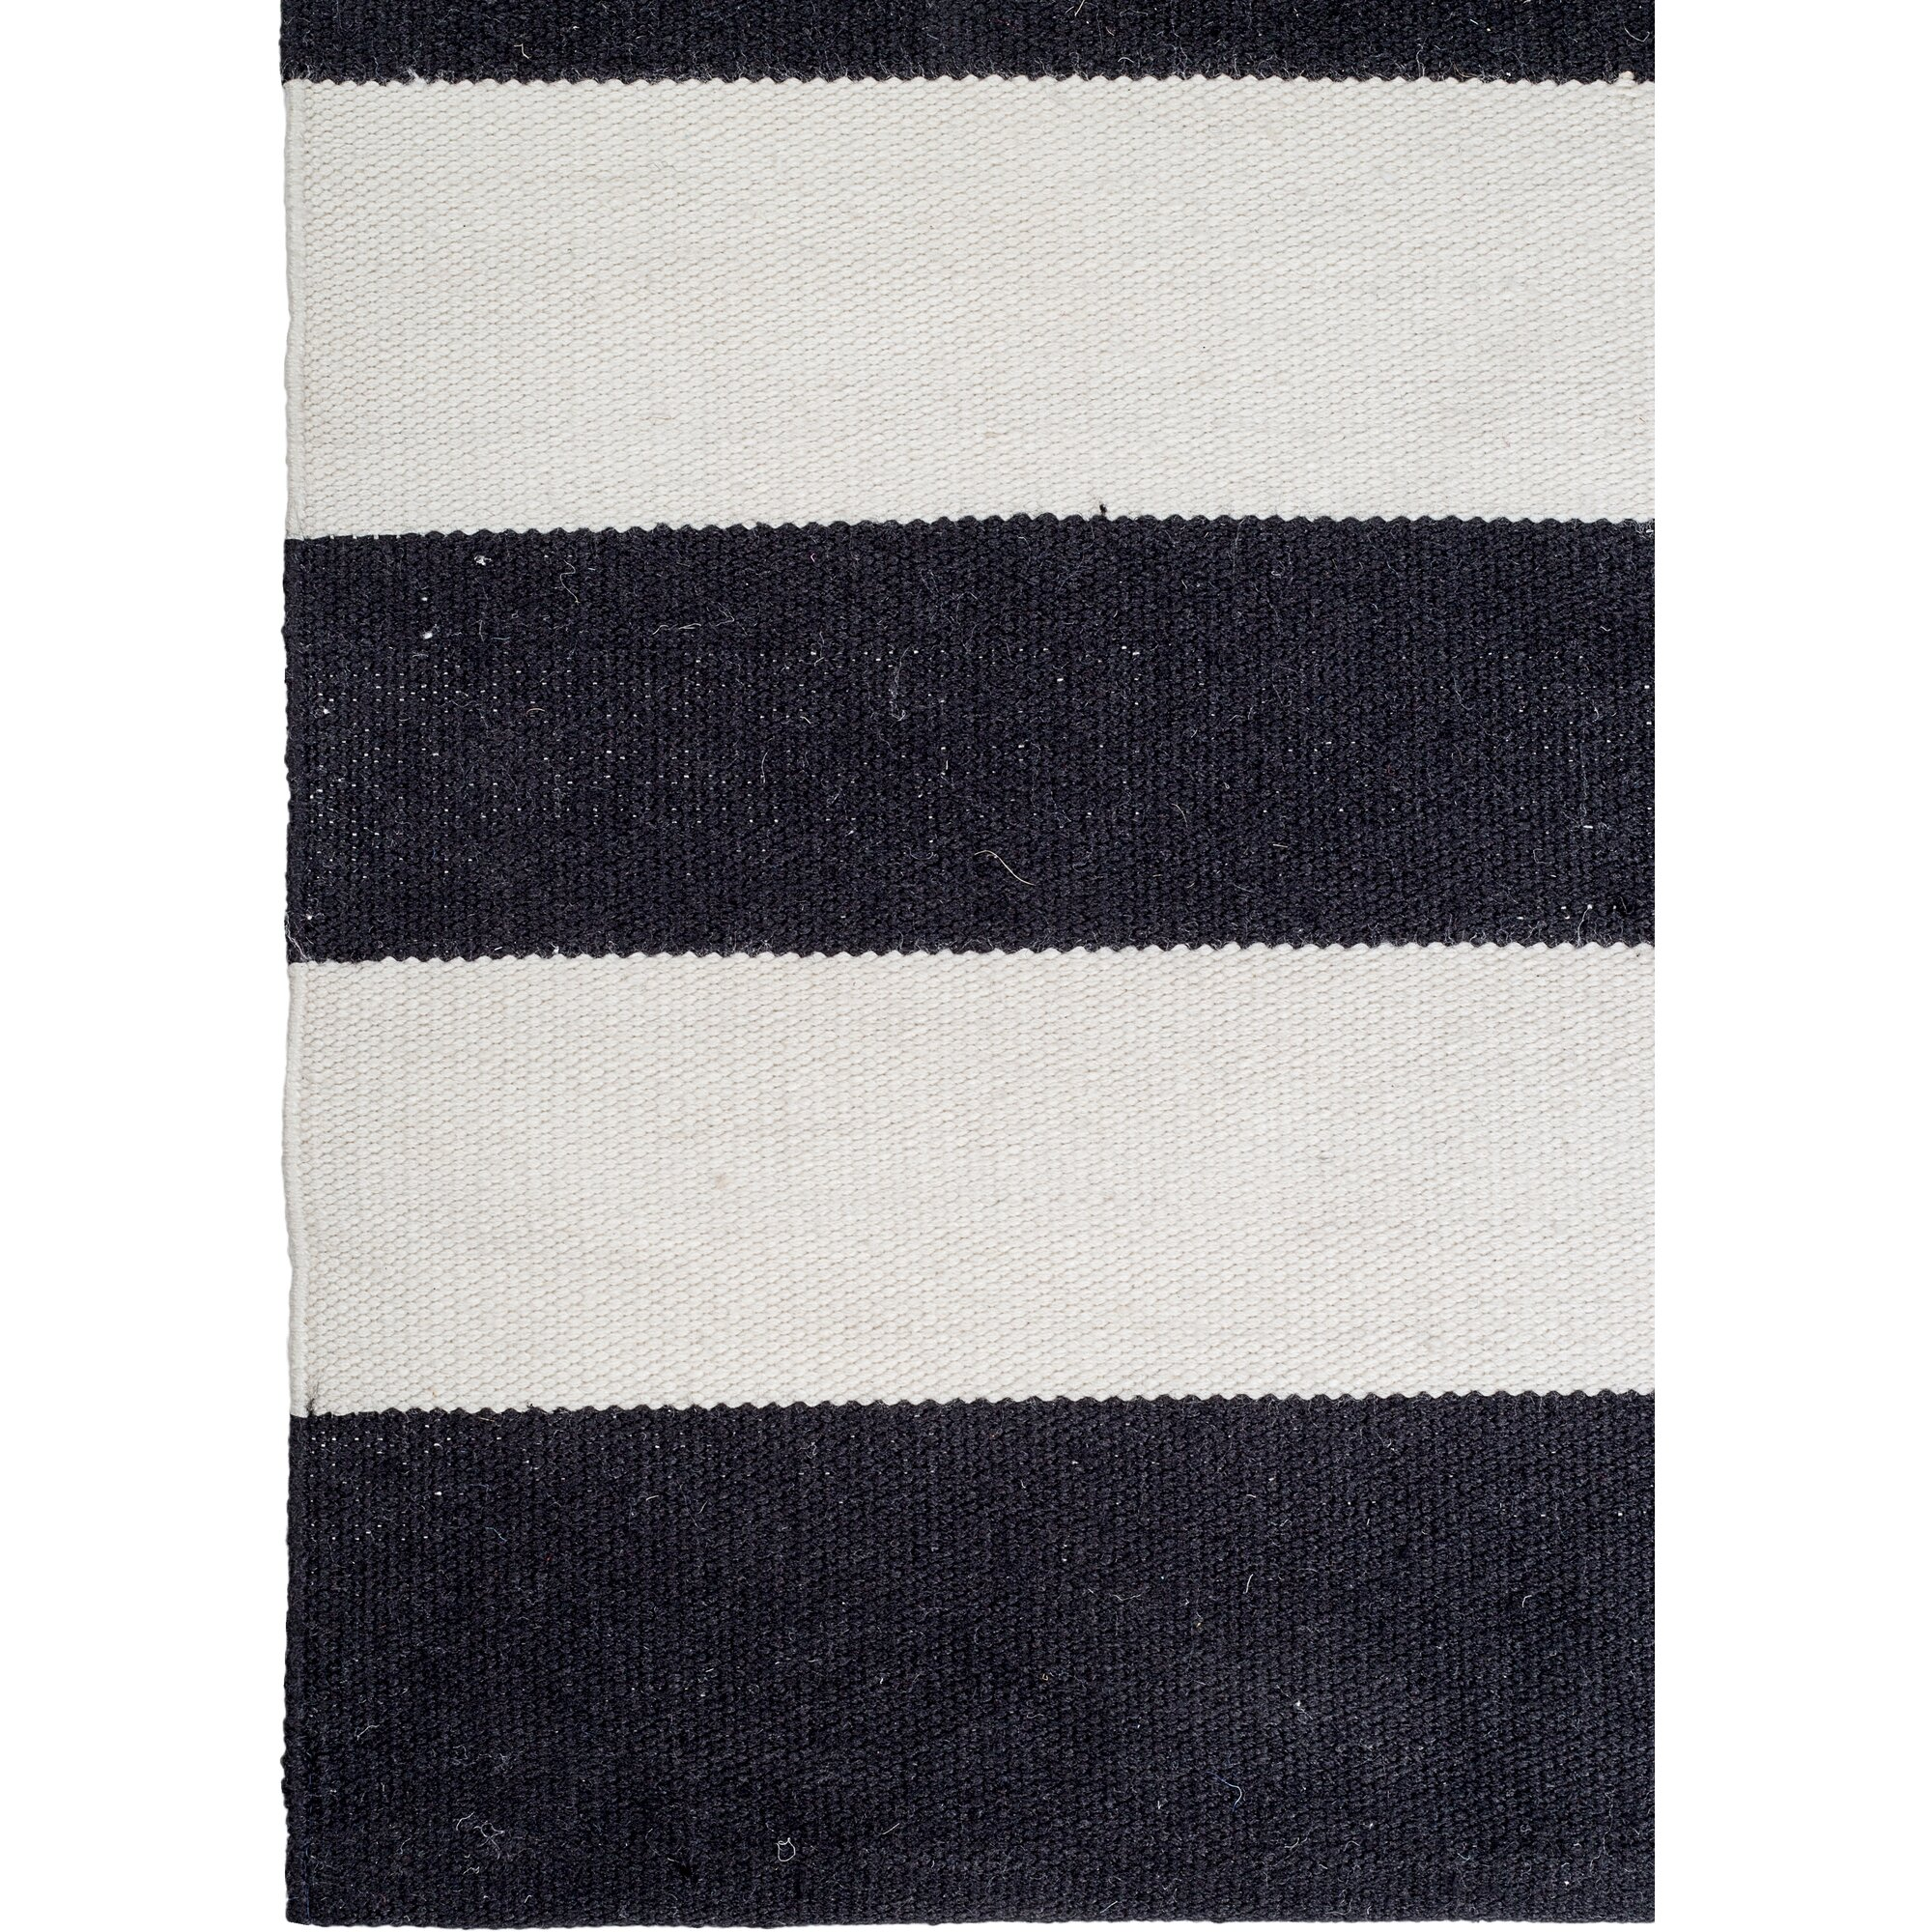 Striped Outdoor Rug Black And White Striped Outdoor Rug Home Design Ideas  And Pictures